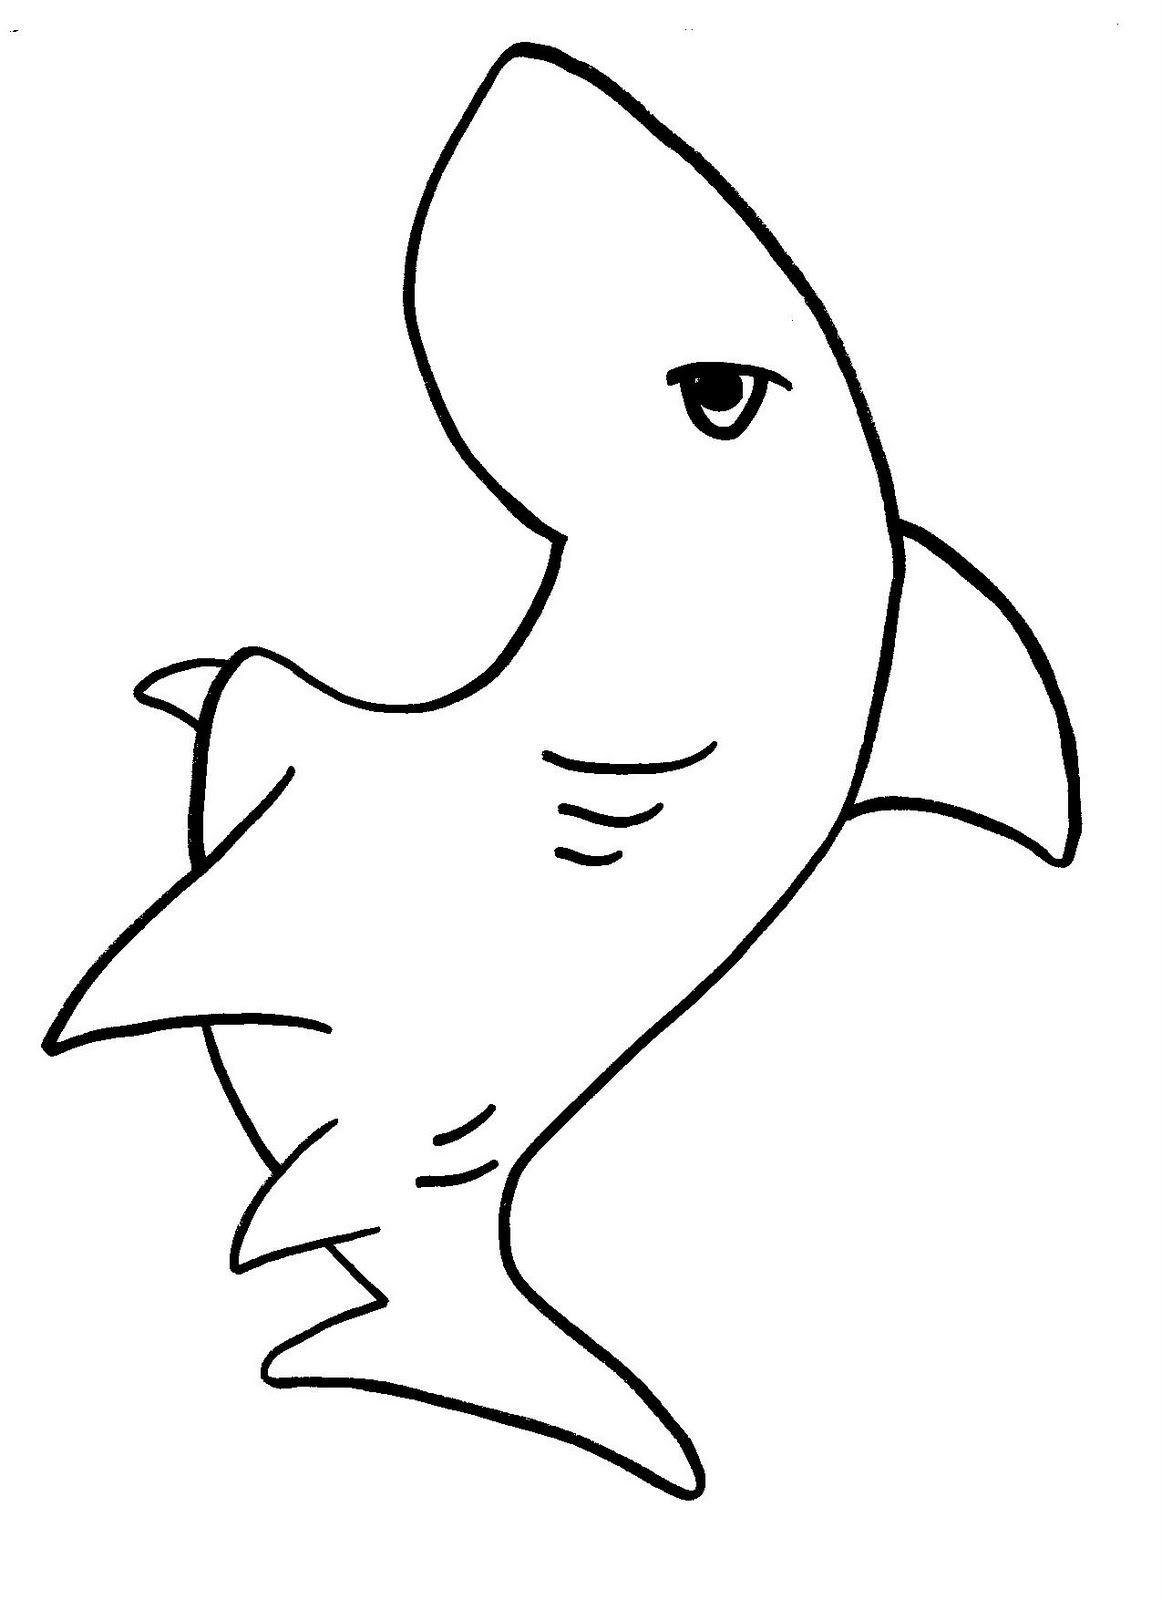 Brilliant Beginnings Preschool Shark Teeth Coloring Page